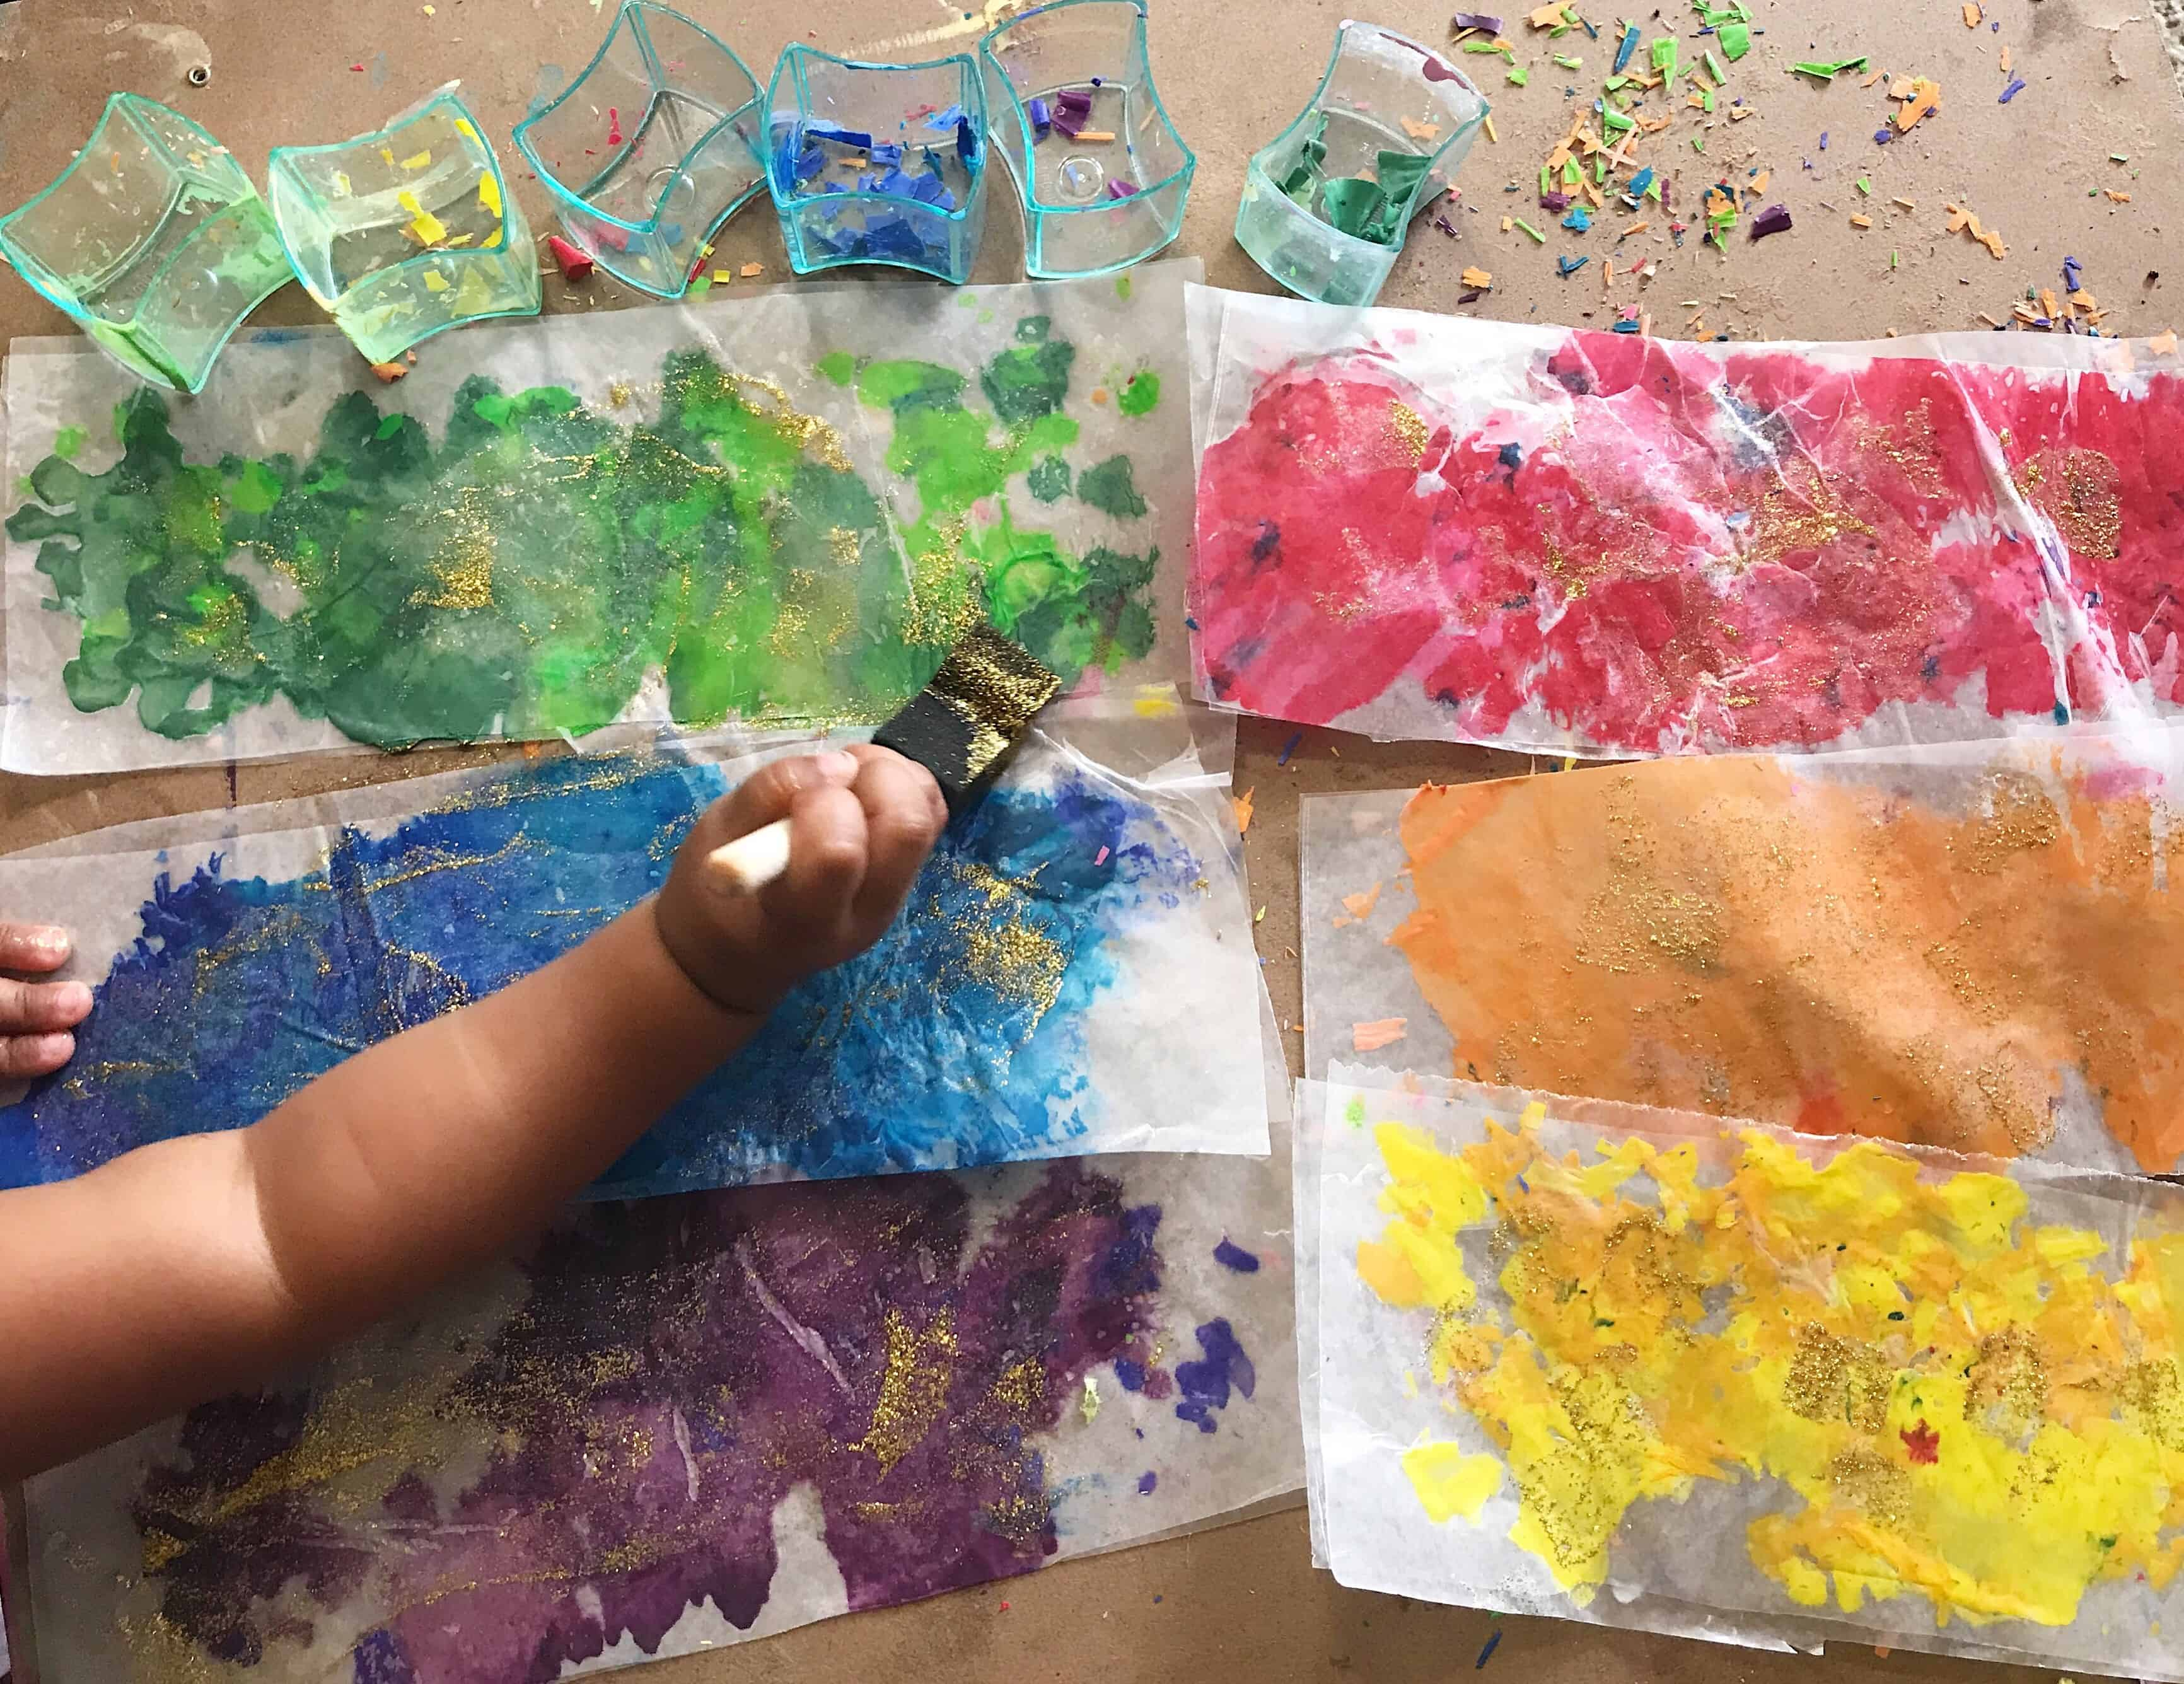 Melted crayon panted onto parchment paper by toddler.